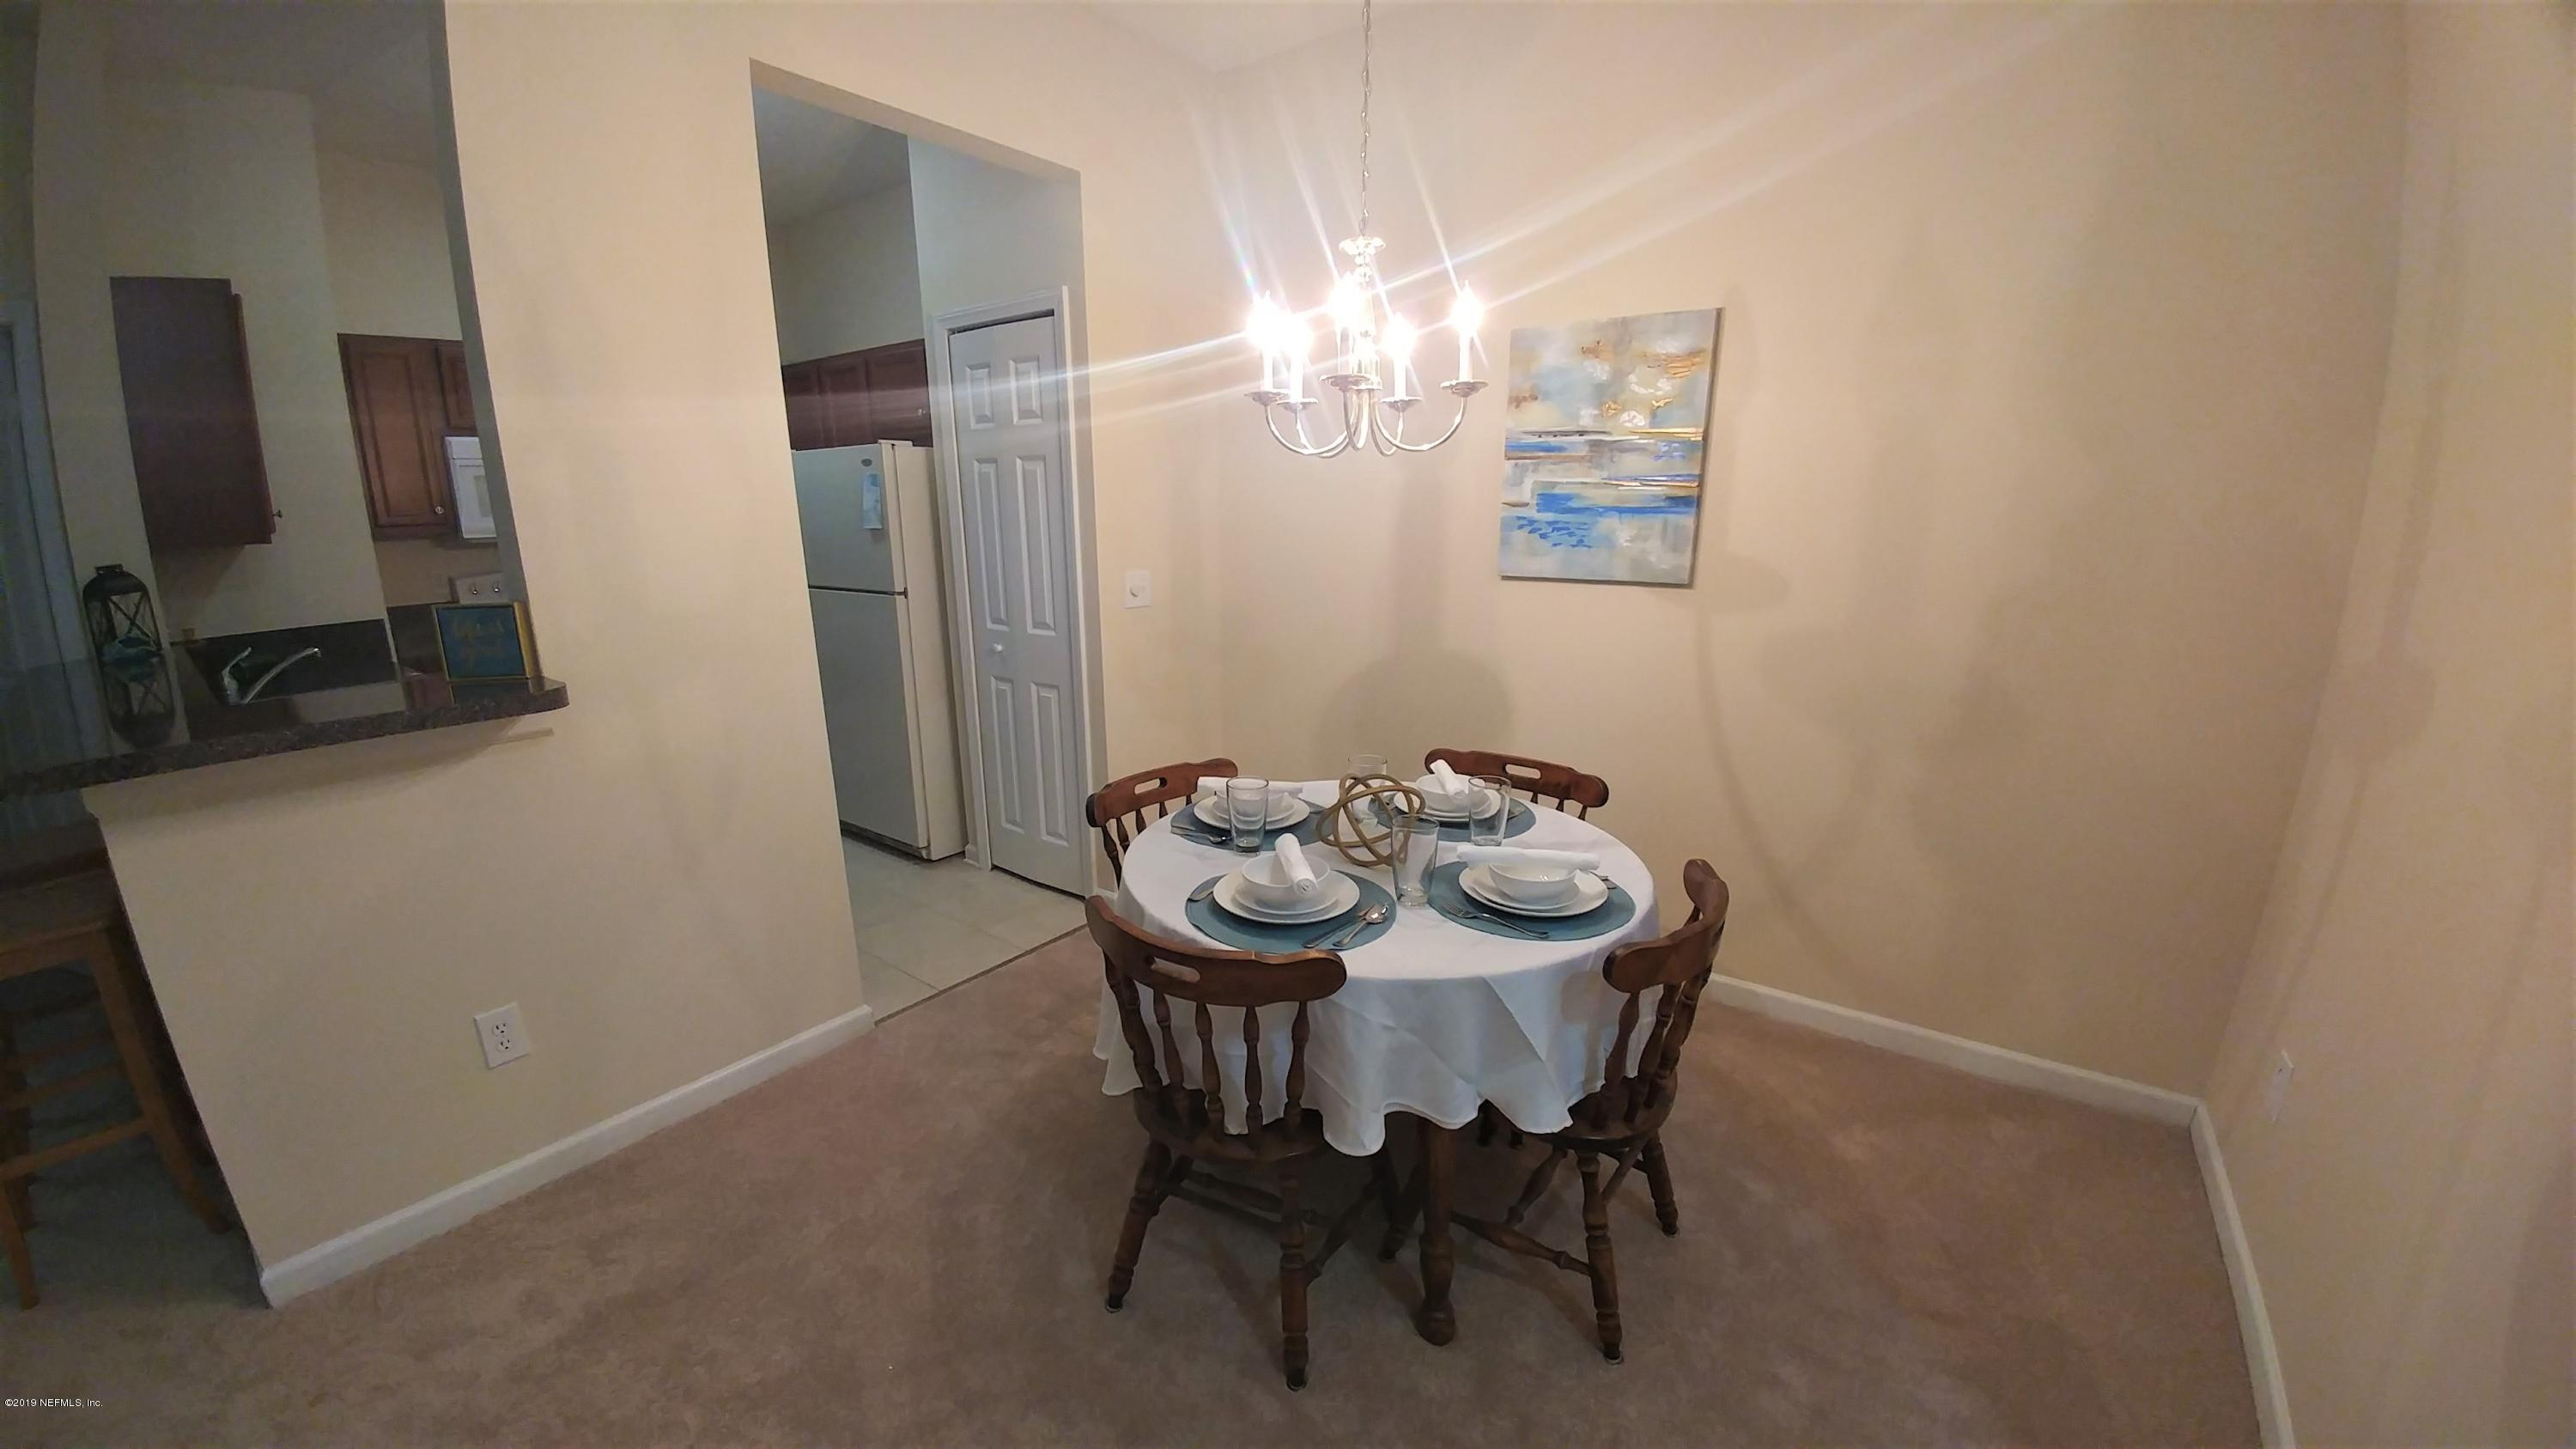 8601 BEACH- JACKSONVILLE- FLORIDA 32216, 2 Bedrooms Bedrooms, ,2 BathroomsBathrooms,Condo,For sale,BEACH,1021028